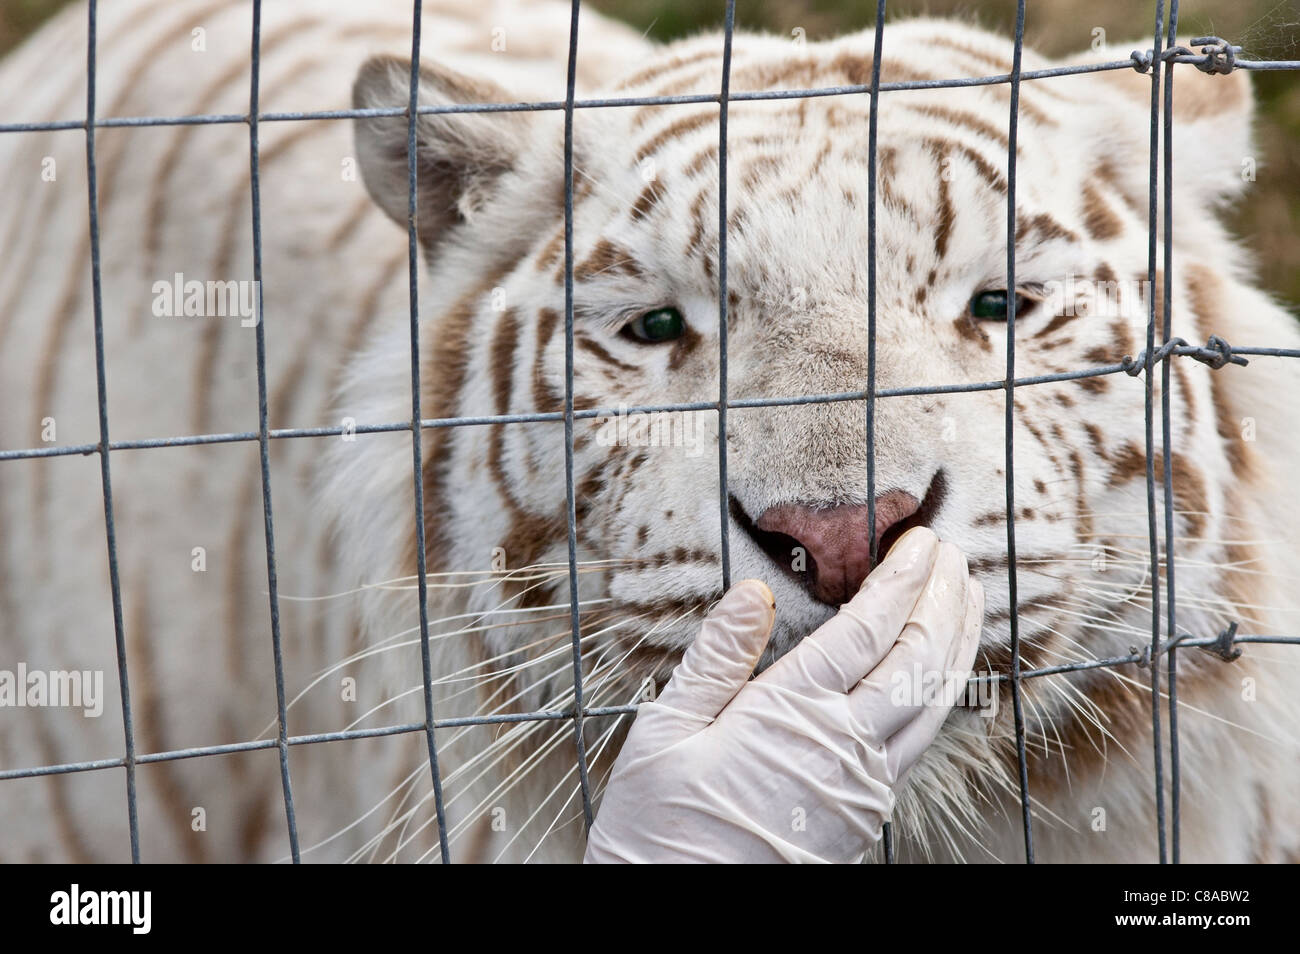 A white tiger taking a tidbit from his handler. - Stock Image